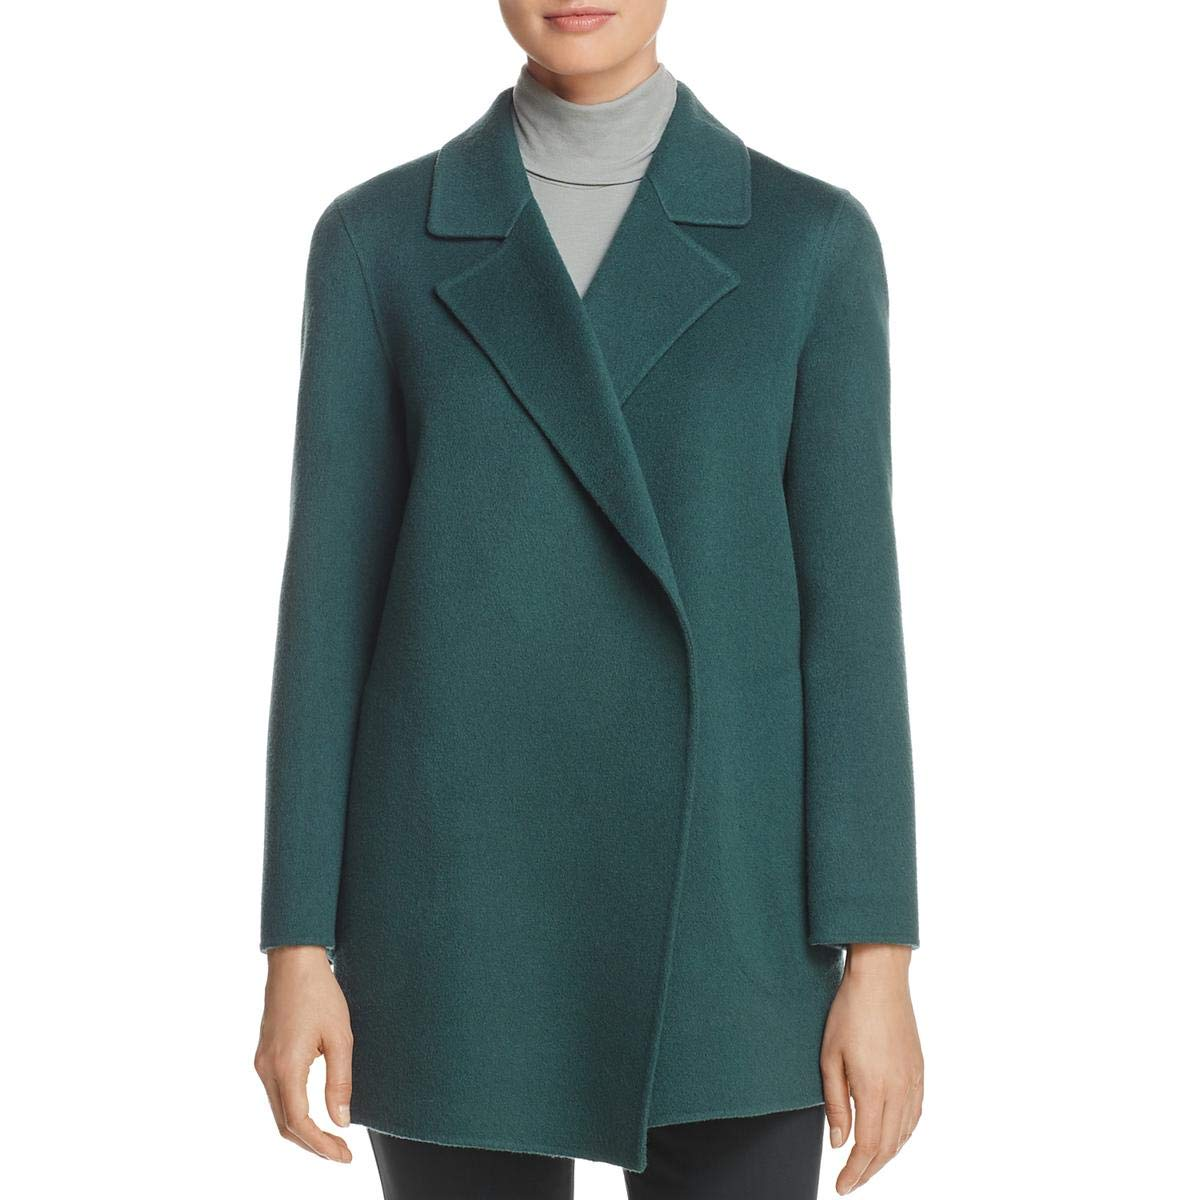 Billard Theory Women's Clairene Outerwear